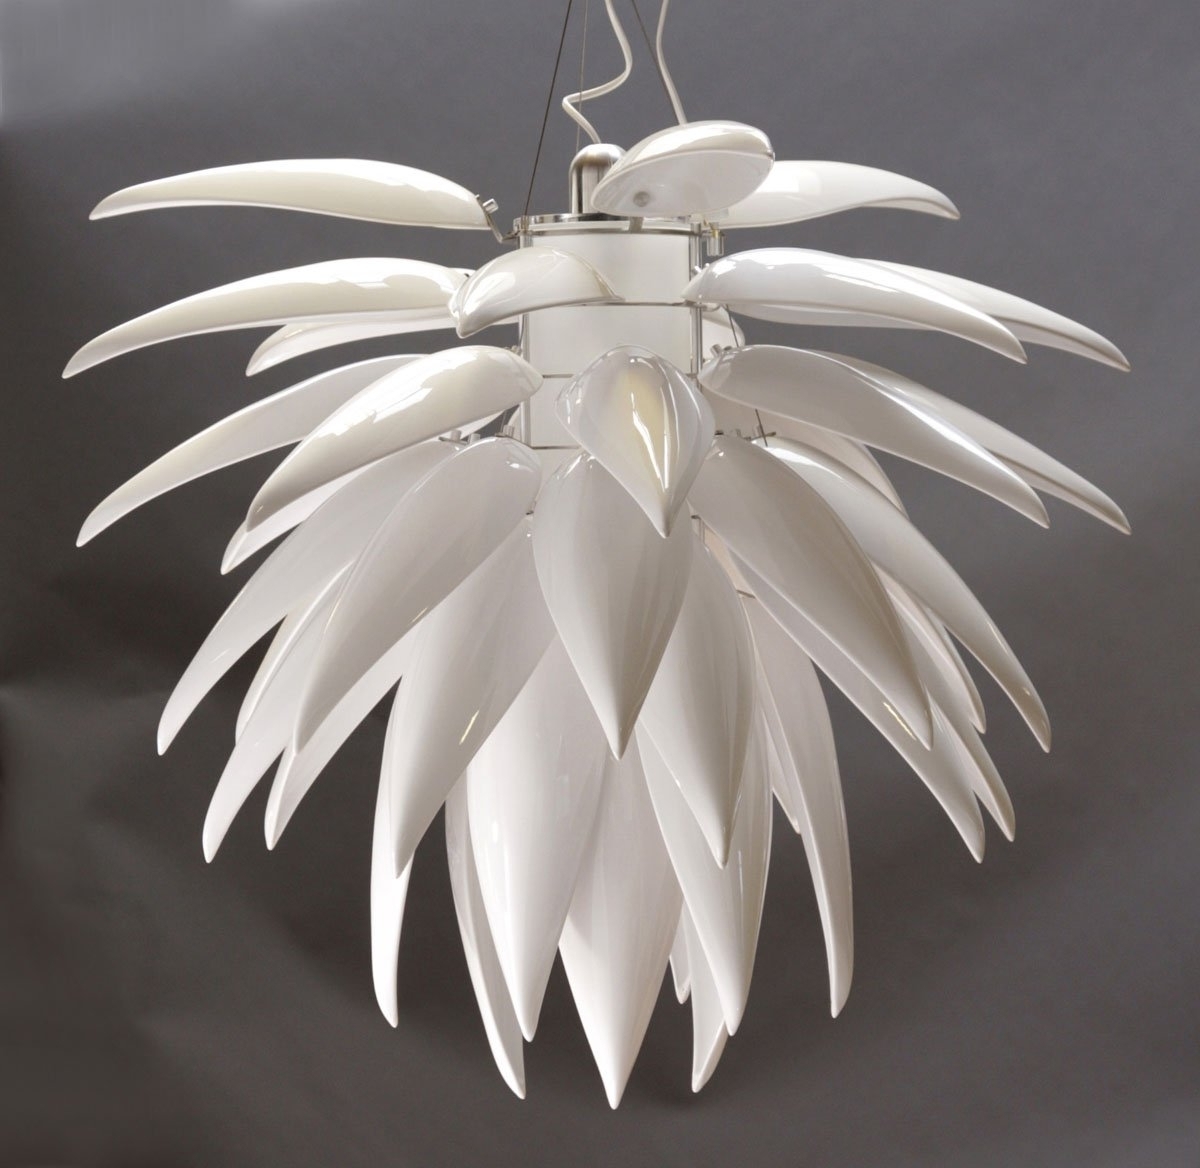 Contemporary Lighting Chandeliers White : Antique Contemporary Inside Most Popular White Contemporary Chandelier (View 9 of 20)